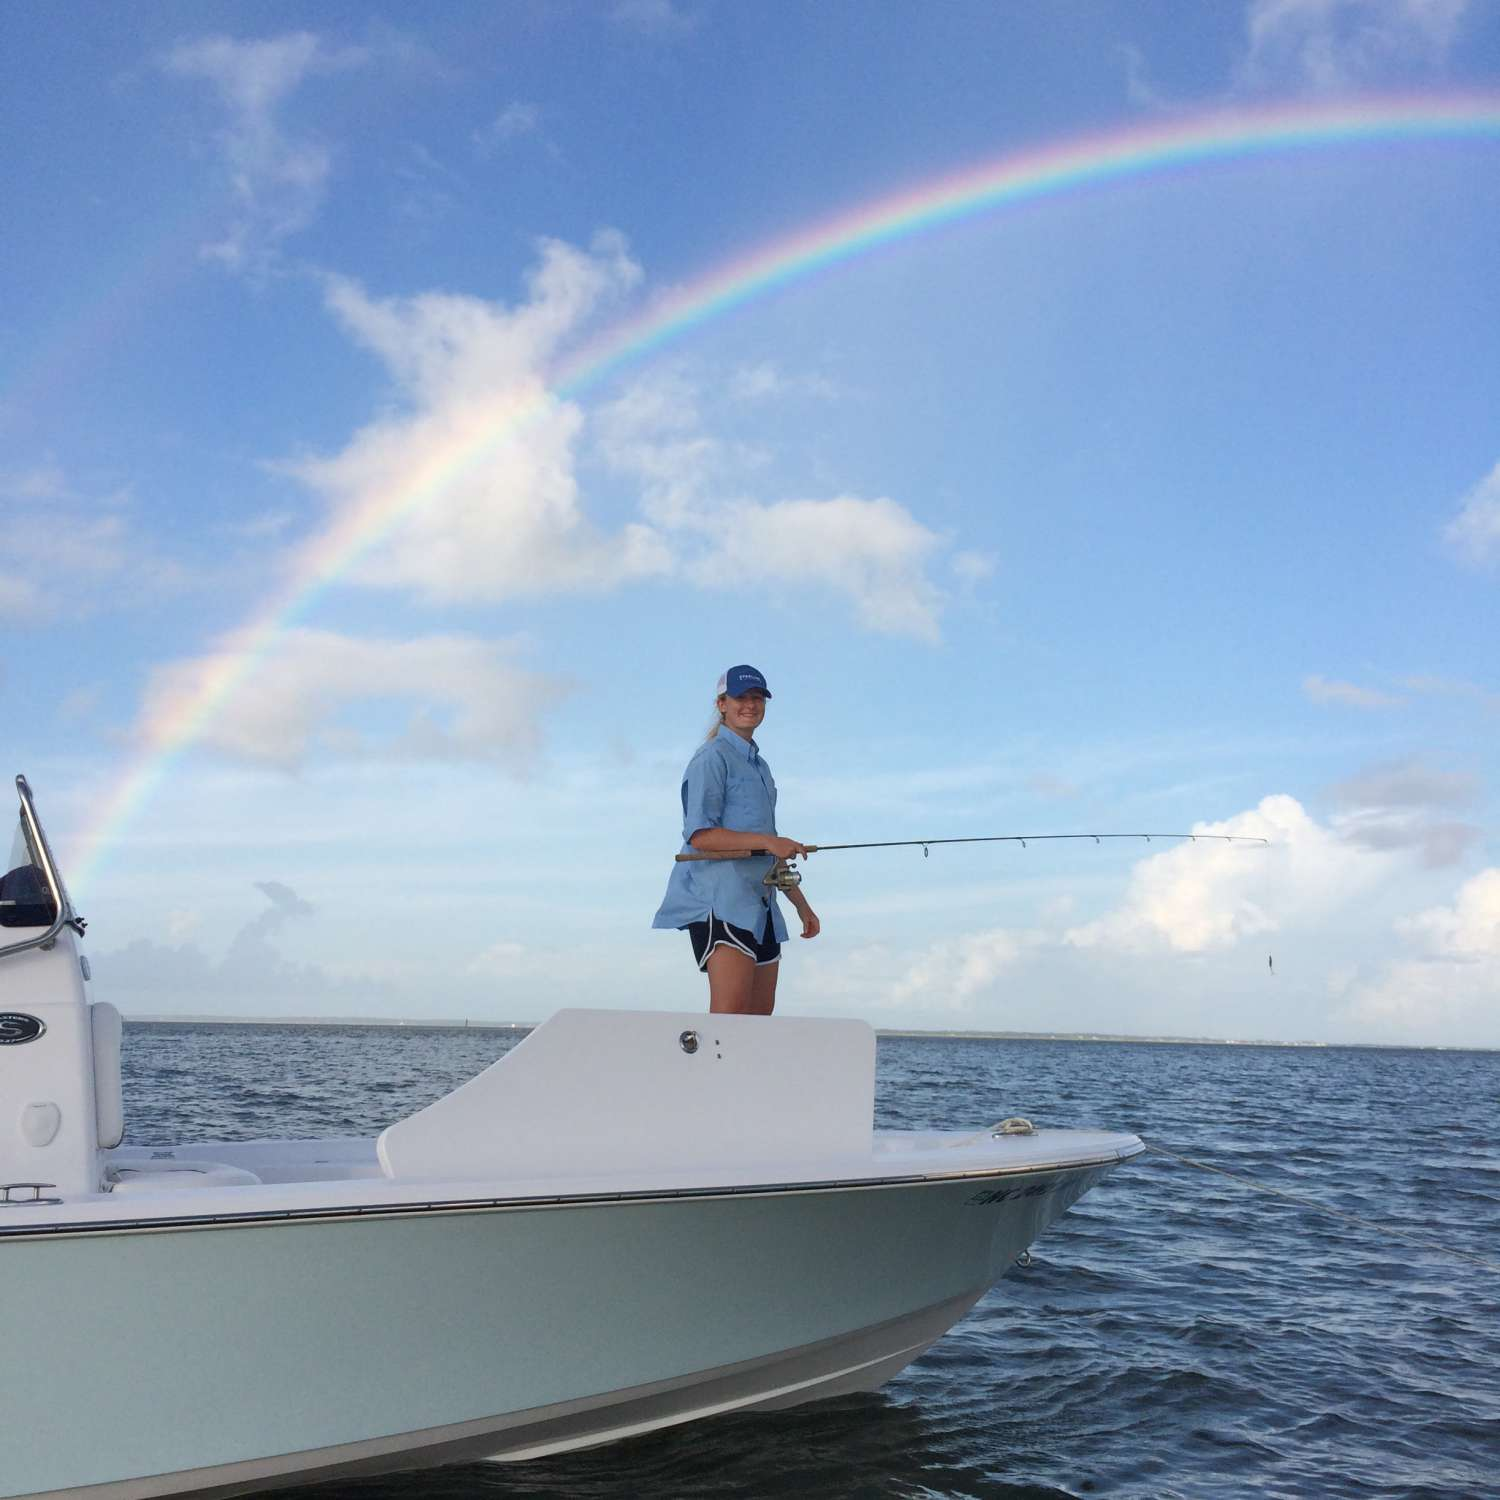 Title: Fishing For Rainbows - On board their Sportsman Masters 227 Bay Boat - Location: Raleigh, North Carolina. Participating in the Photo Contest #SportsmanAugust2017